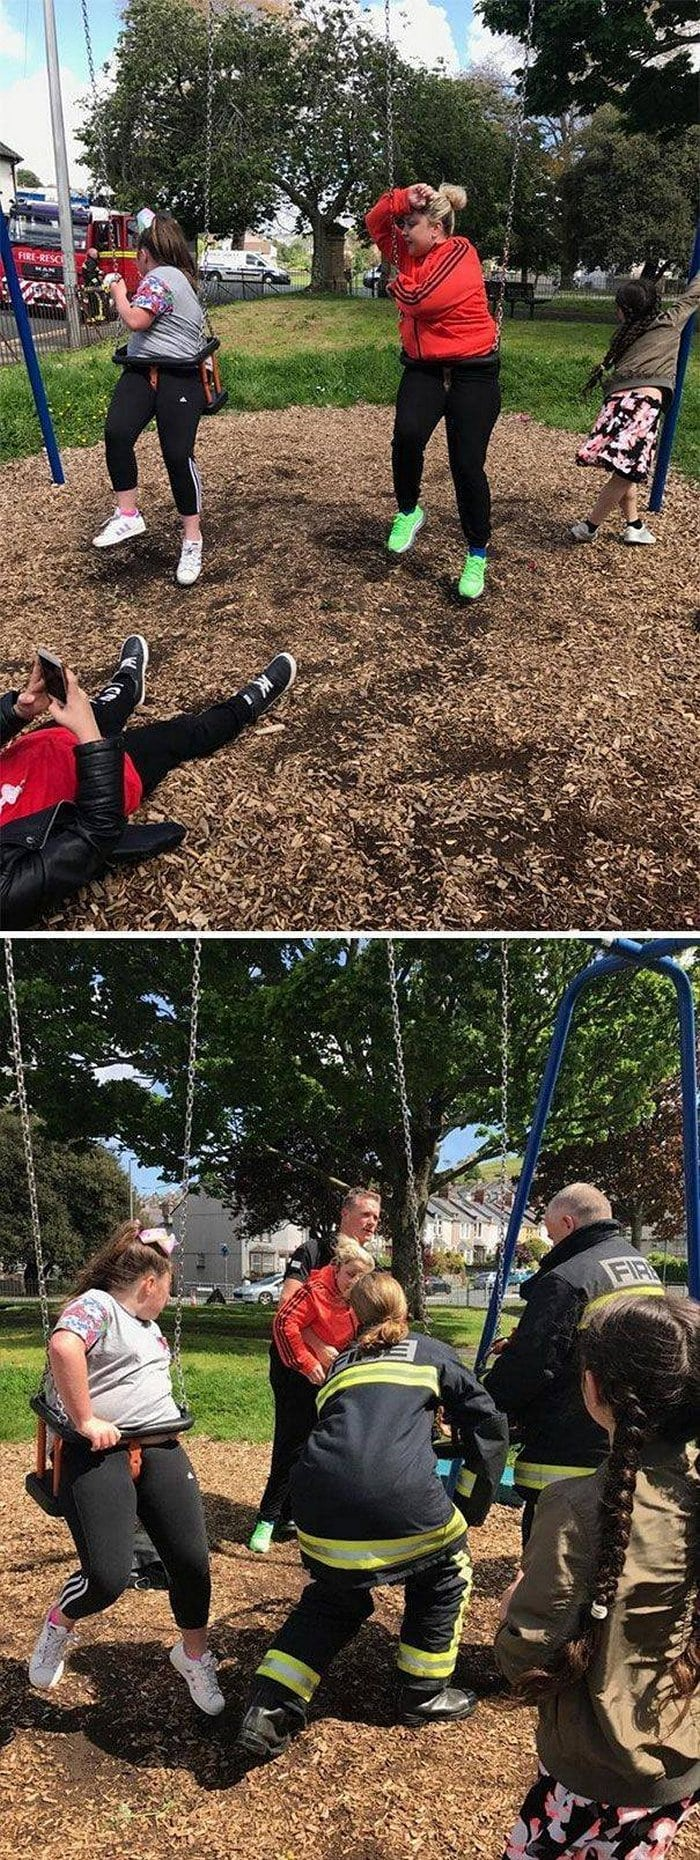 Funny Adults That Stuck At Kids Playgrounds (36 Photos)-35